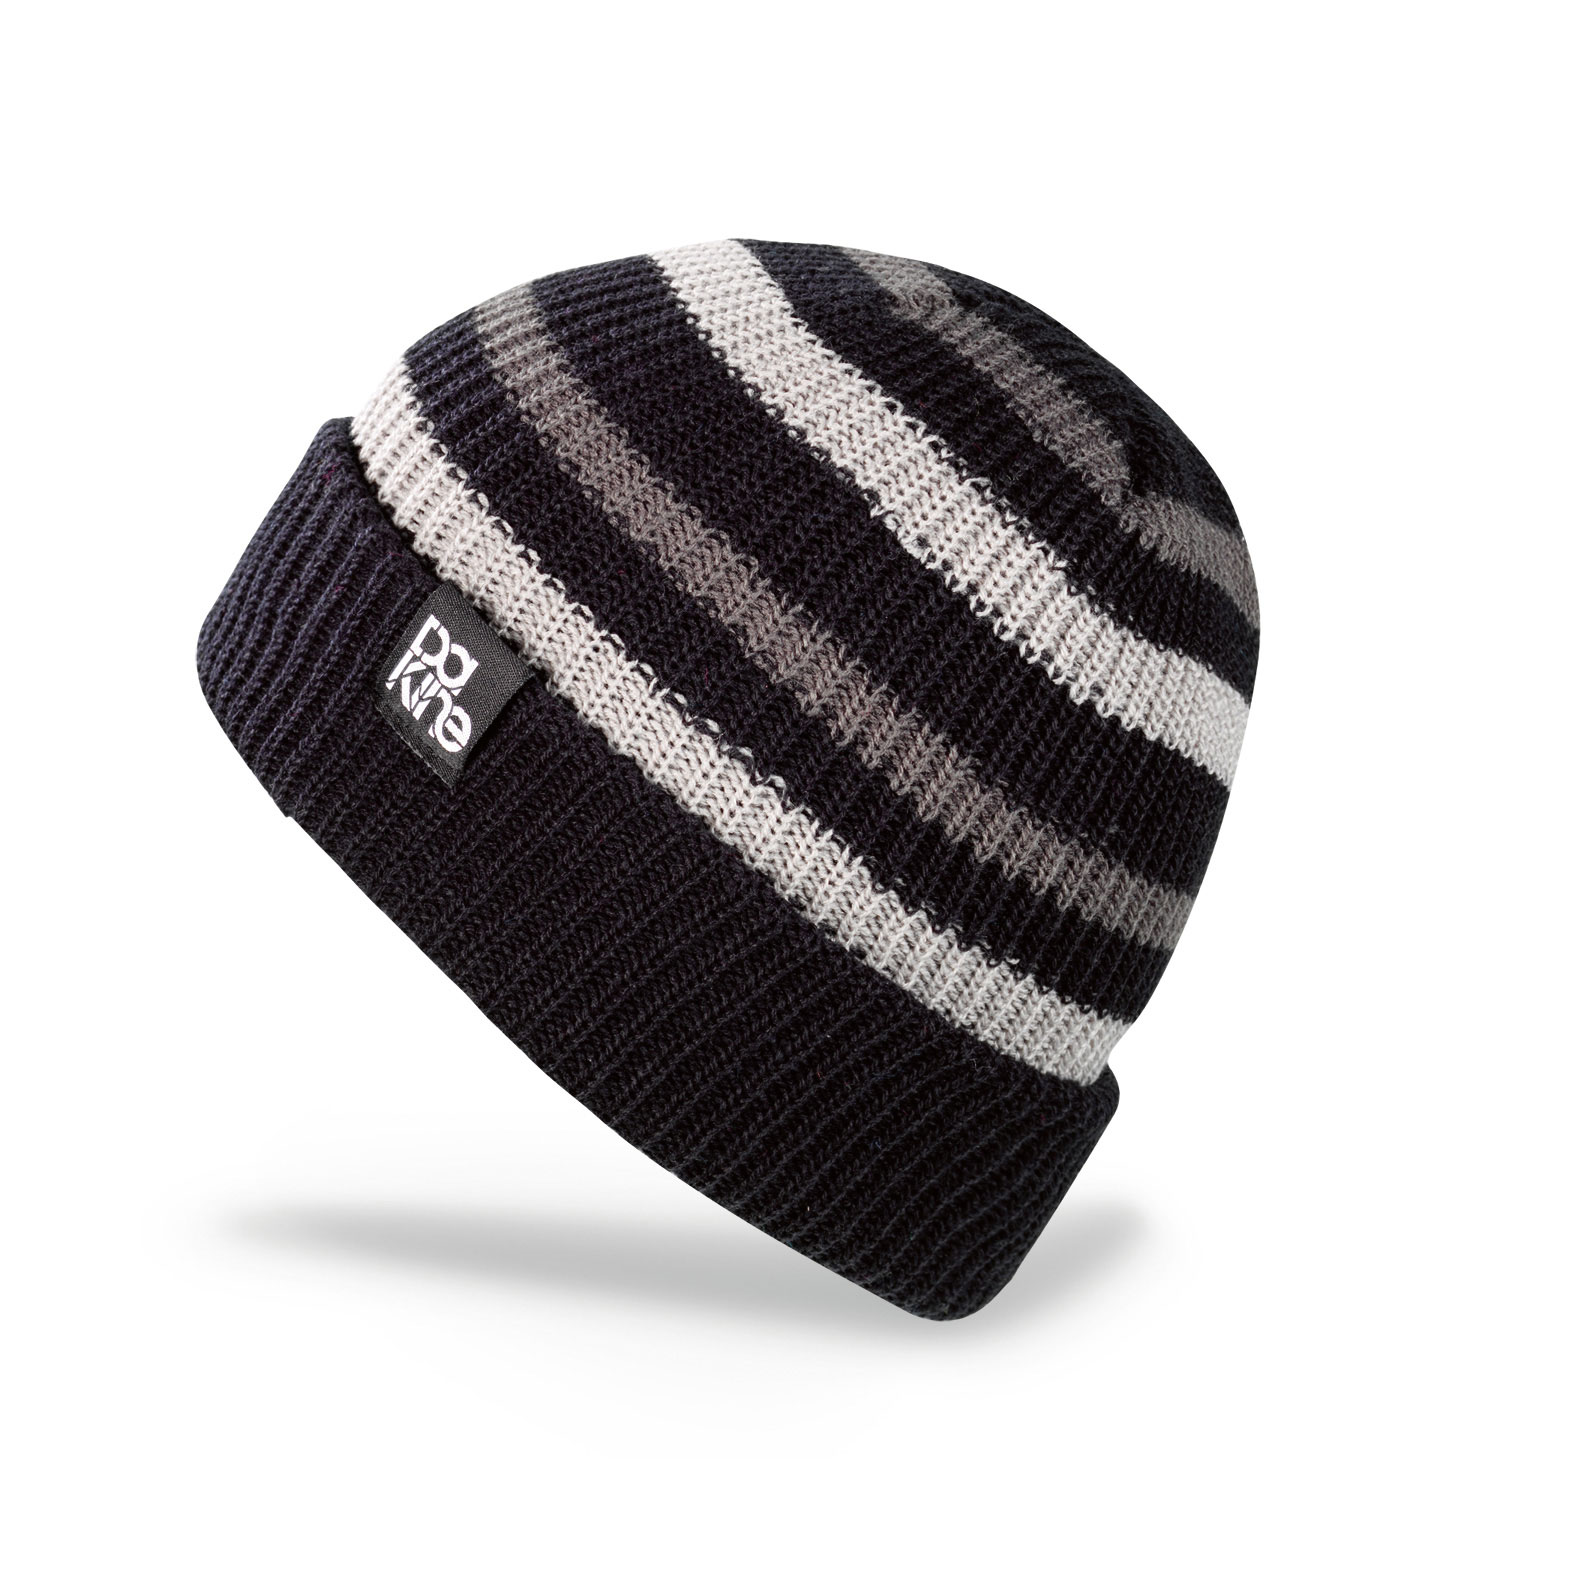 Snowboard Key Features of the Dakine Chase Beanie: Acrylic ribbed knit Double lined Wear slouchy or cuffed - $16.00